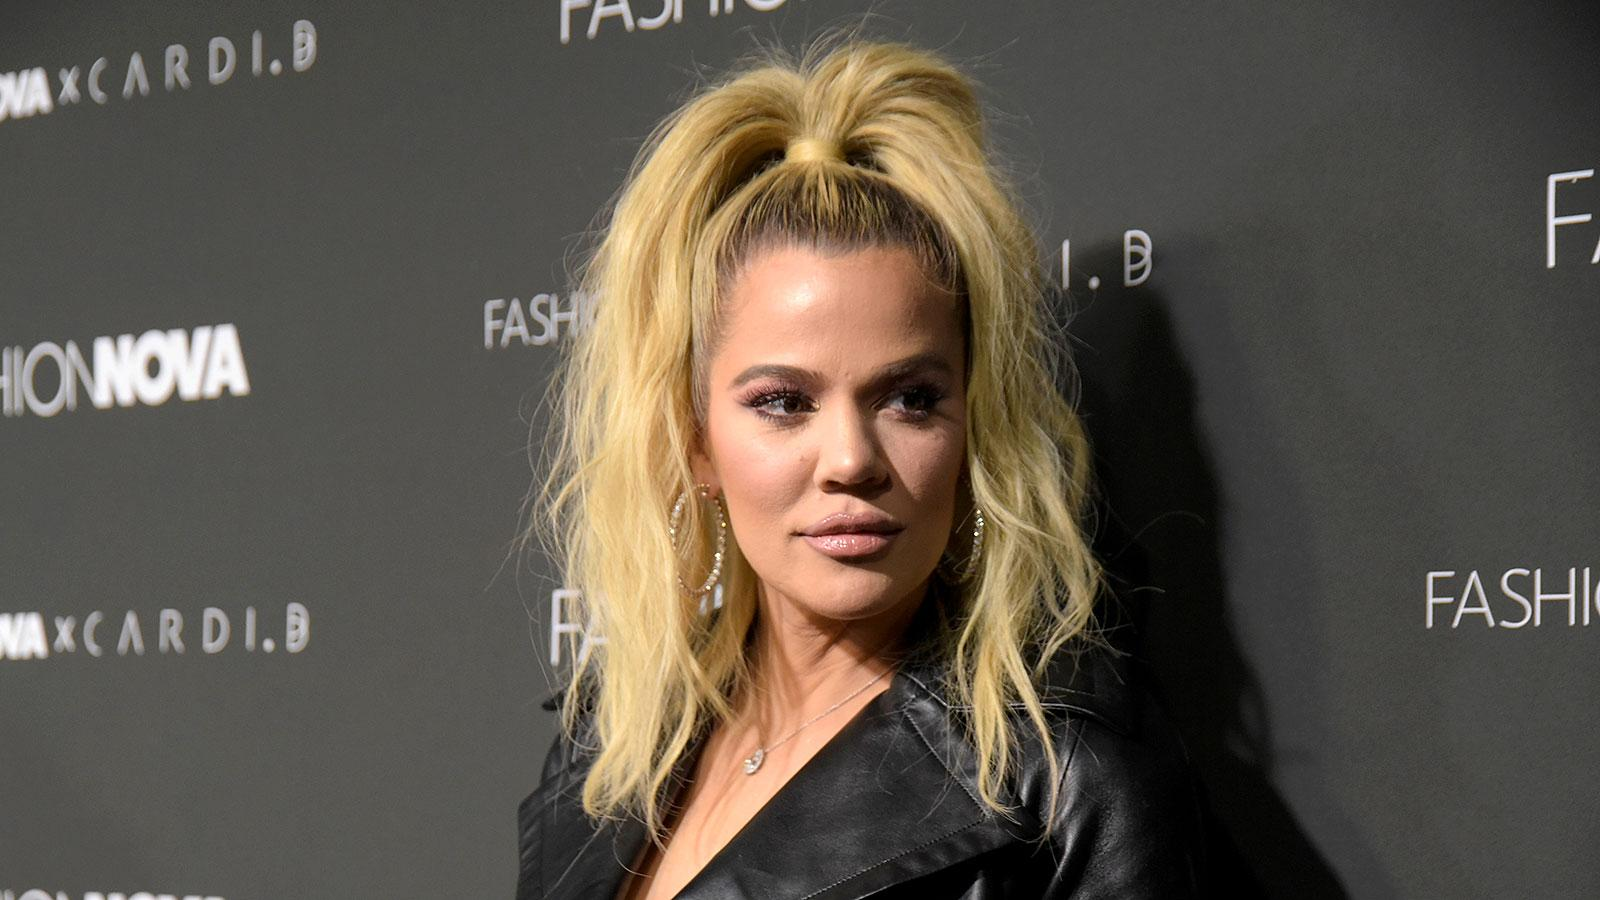 Wendy Williams Drags Khloe Kardashian - 'There's Nothing Natural About Her!'